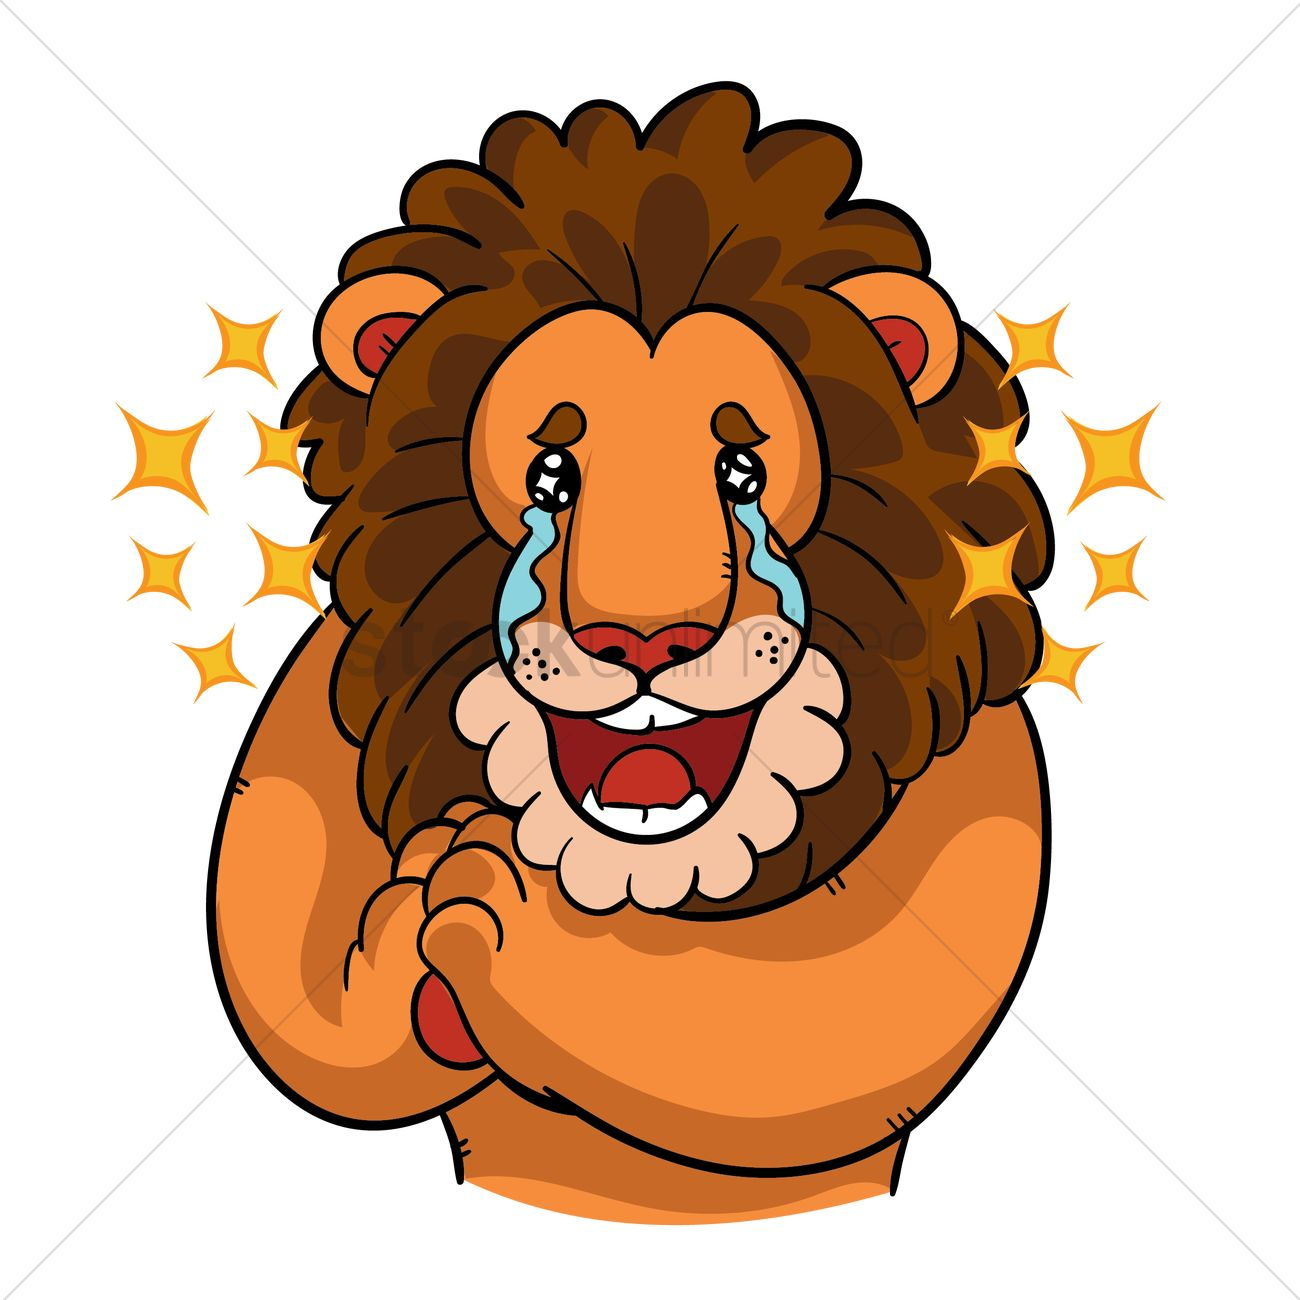 Cartoon Lion With Tears Of Joy Vector Image 1957589